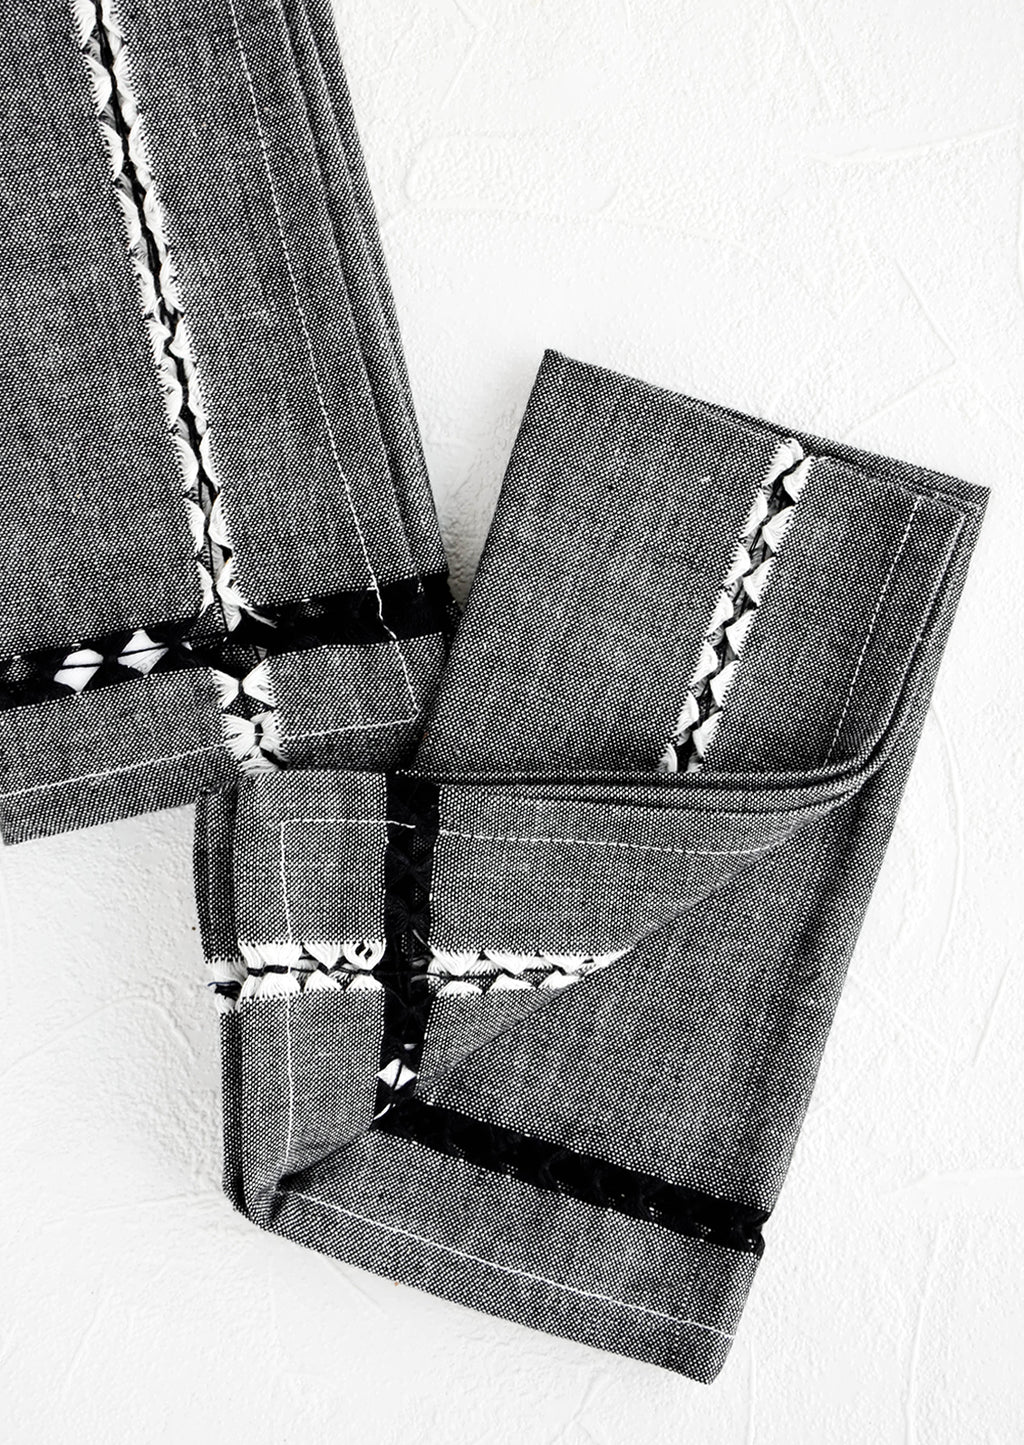 2: Pair of folded fabric dinner napkins in black chambray with geometric cutout detailing